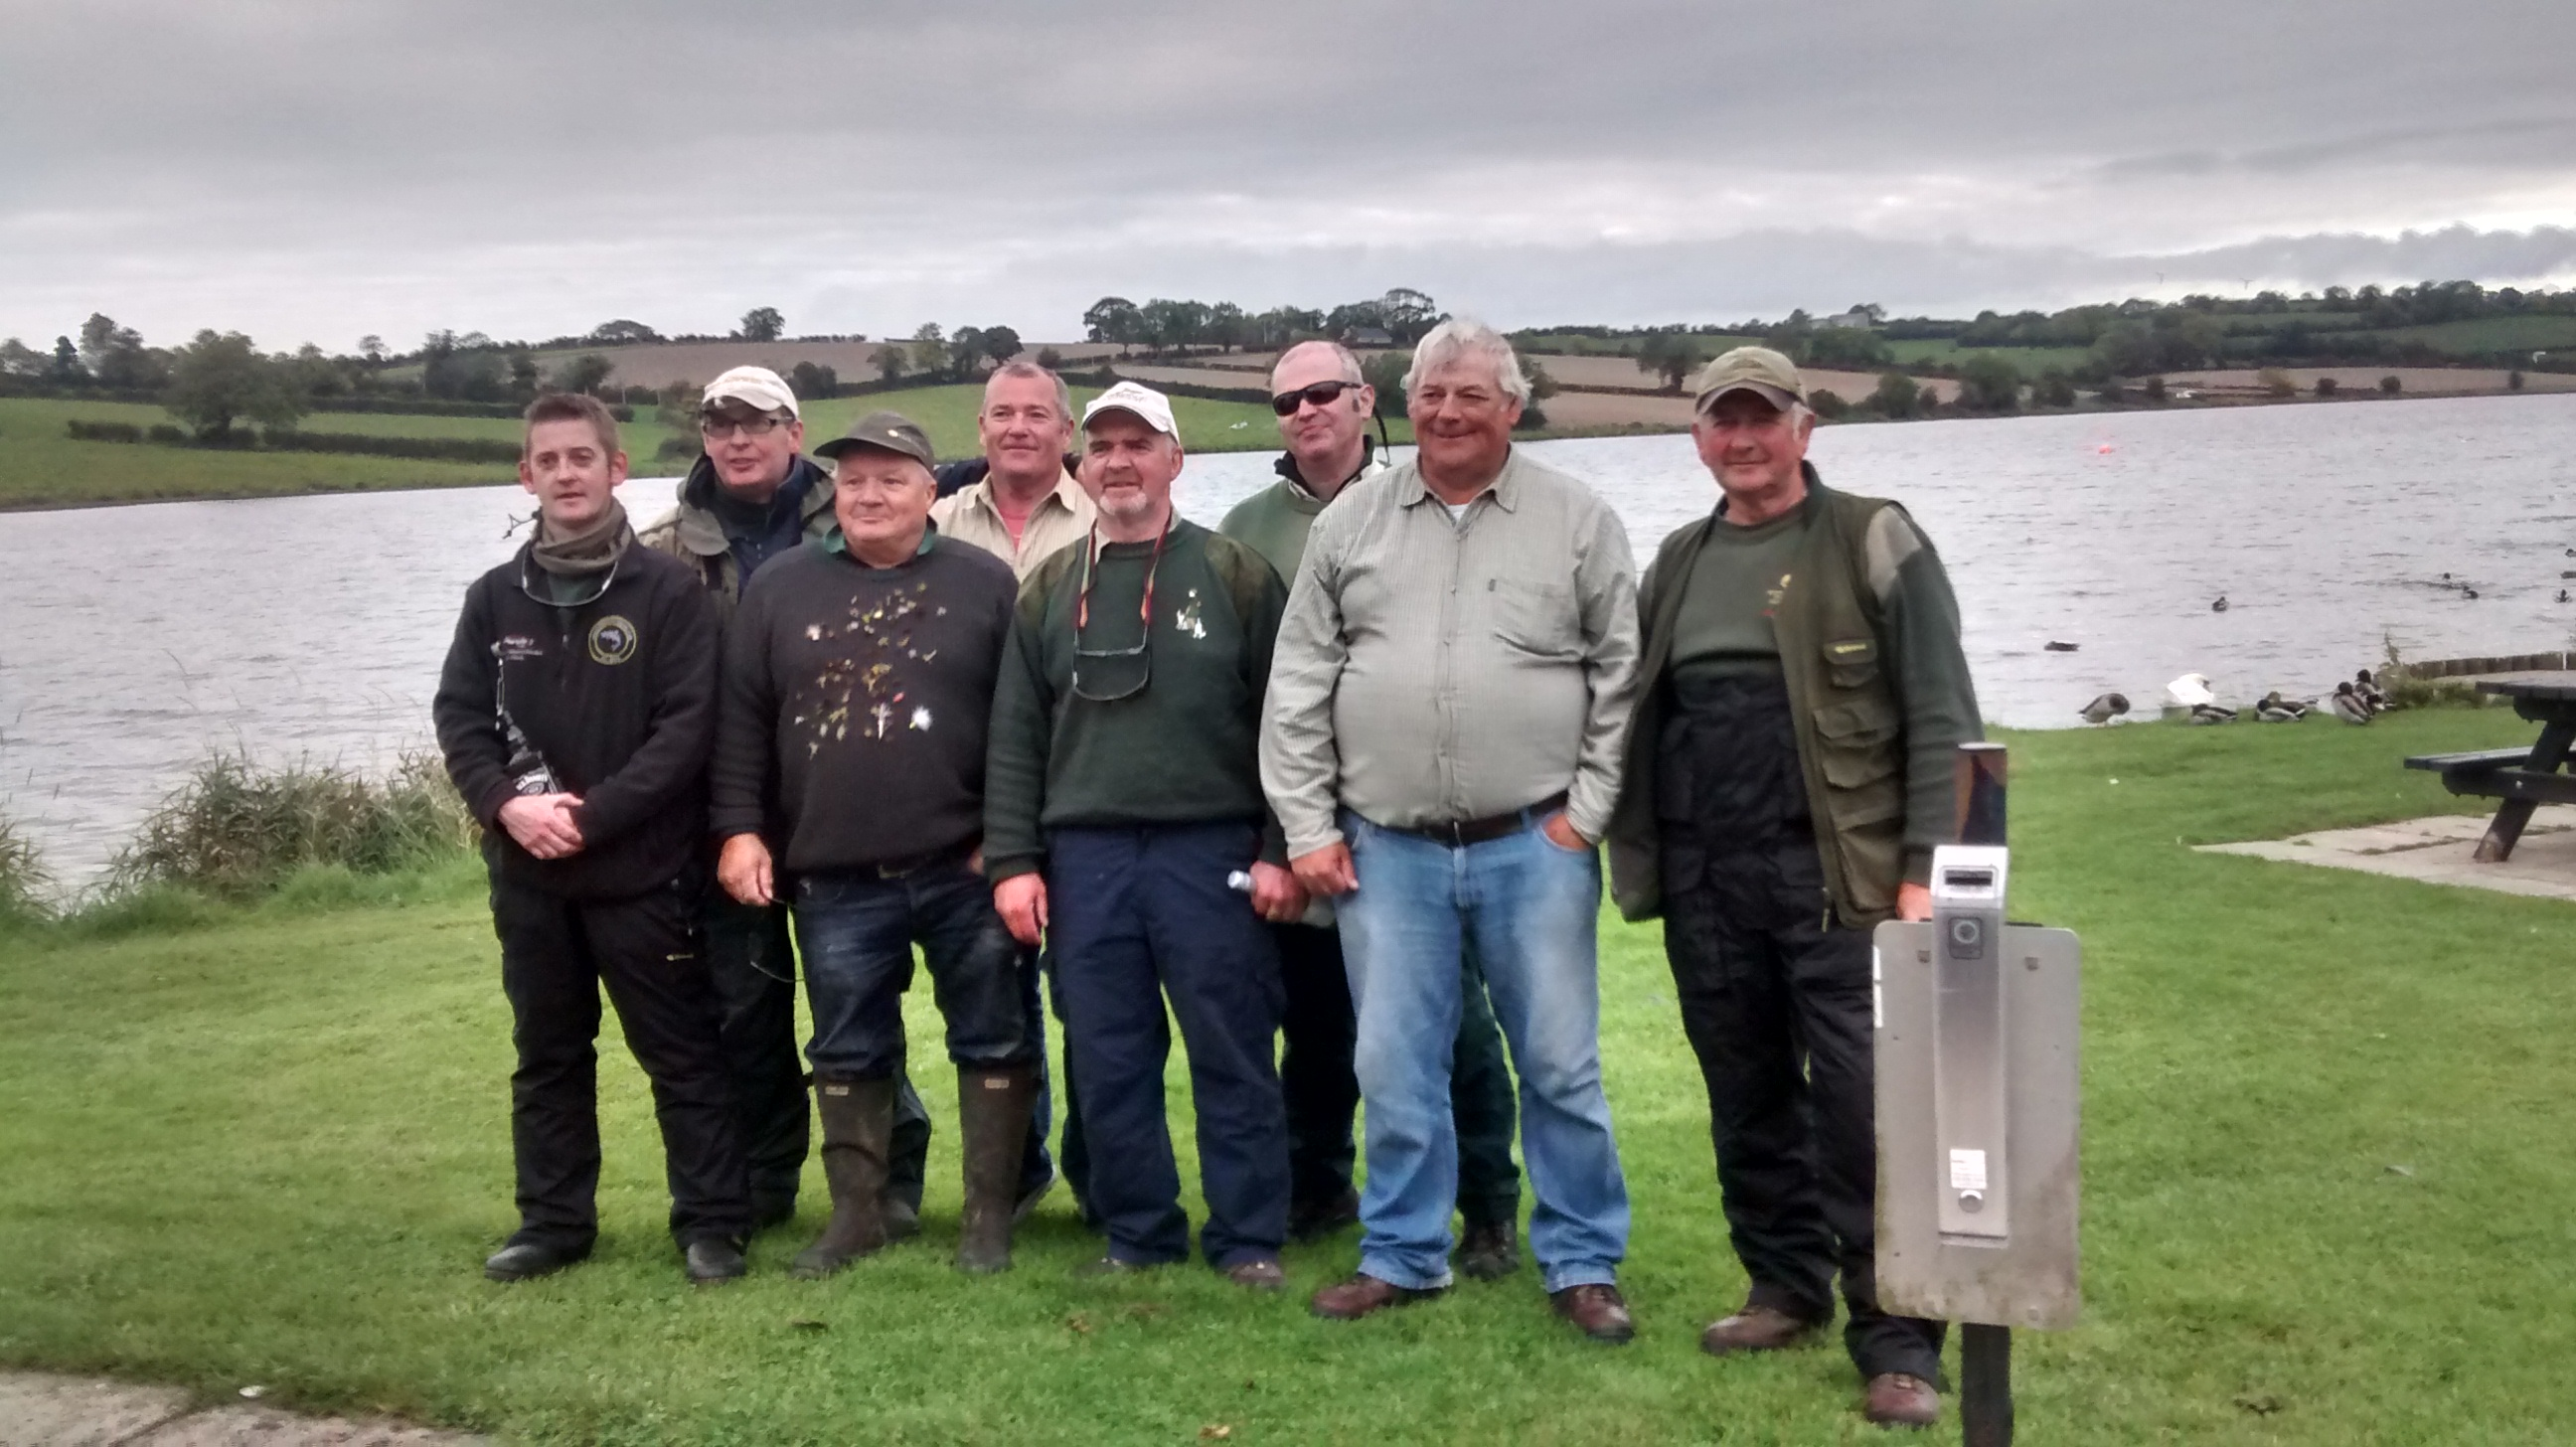 BAC Freddie Steele and friends at Corbet Lough October 2015